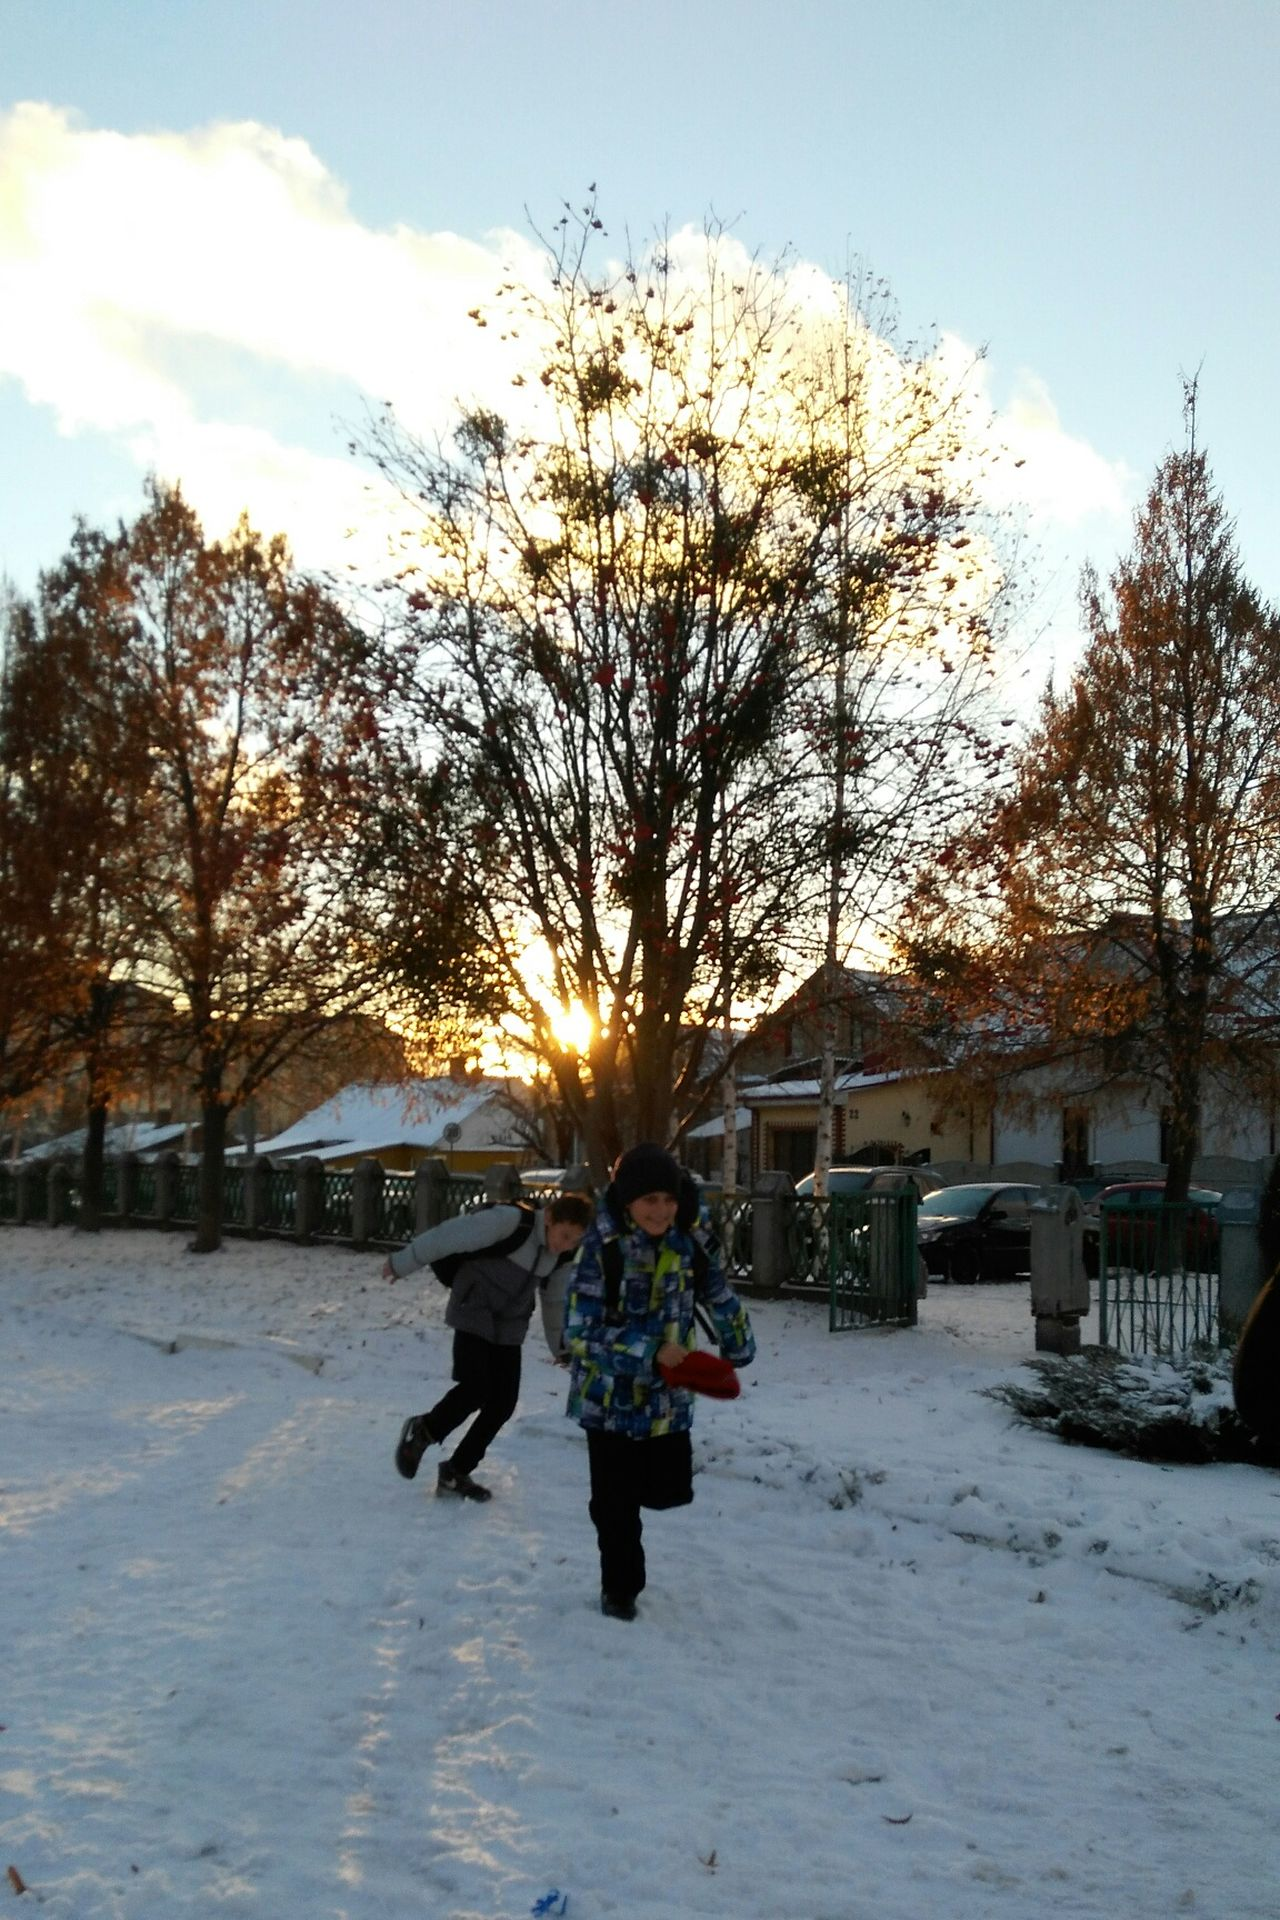 Cold Temperature Winter Tree Snow People Sky Architecture Day Beauty In Nature Outdoors Nature Scenics Close-up Lifestyles Cultures Cloud - Sky Sunny Day Winter School Children Photography Children Playing Snow ❄ Sunset December Chilling